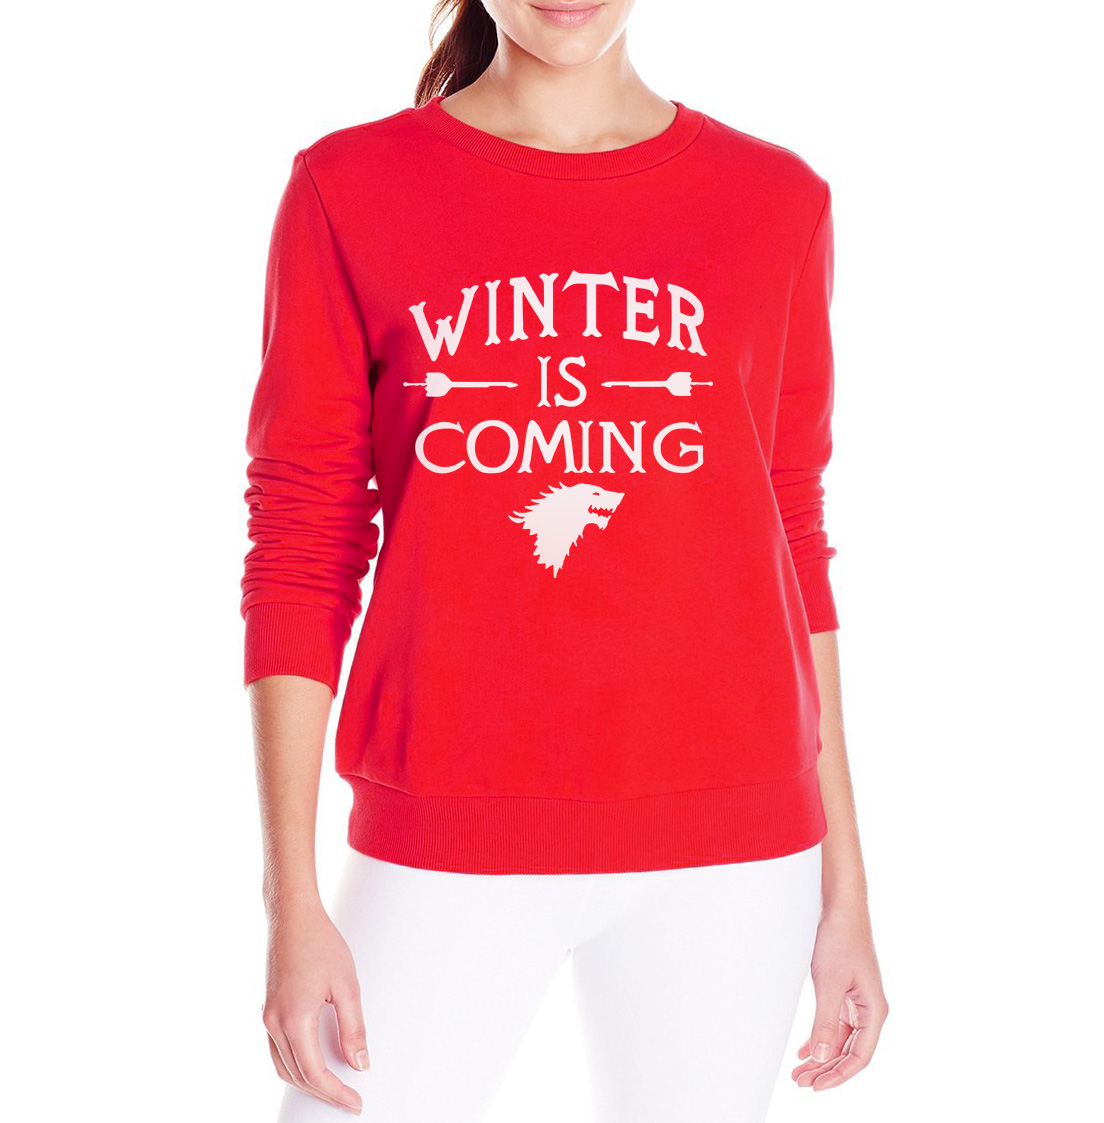 Fashion Juego De Tronos Soon Funny Winter Women Sweatshirt White Sheathed Old Colours Red Black 6mm Twin Earth Wiring Cable As Different Computers Display Colors Differently The Color Of Actual Item May Vary Slightly From Above Images Thanks For Your Understanding